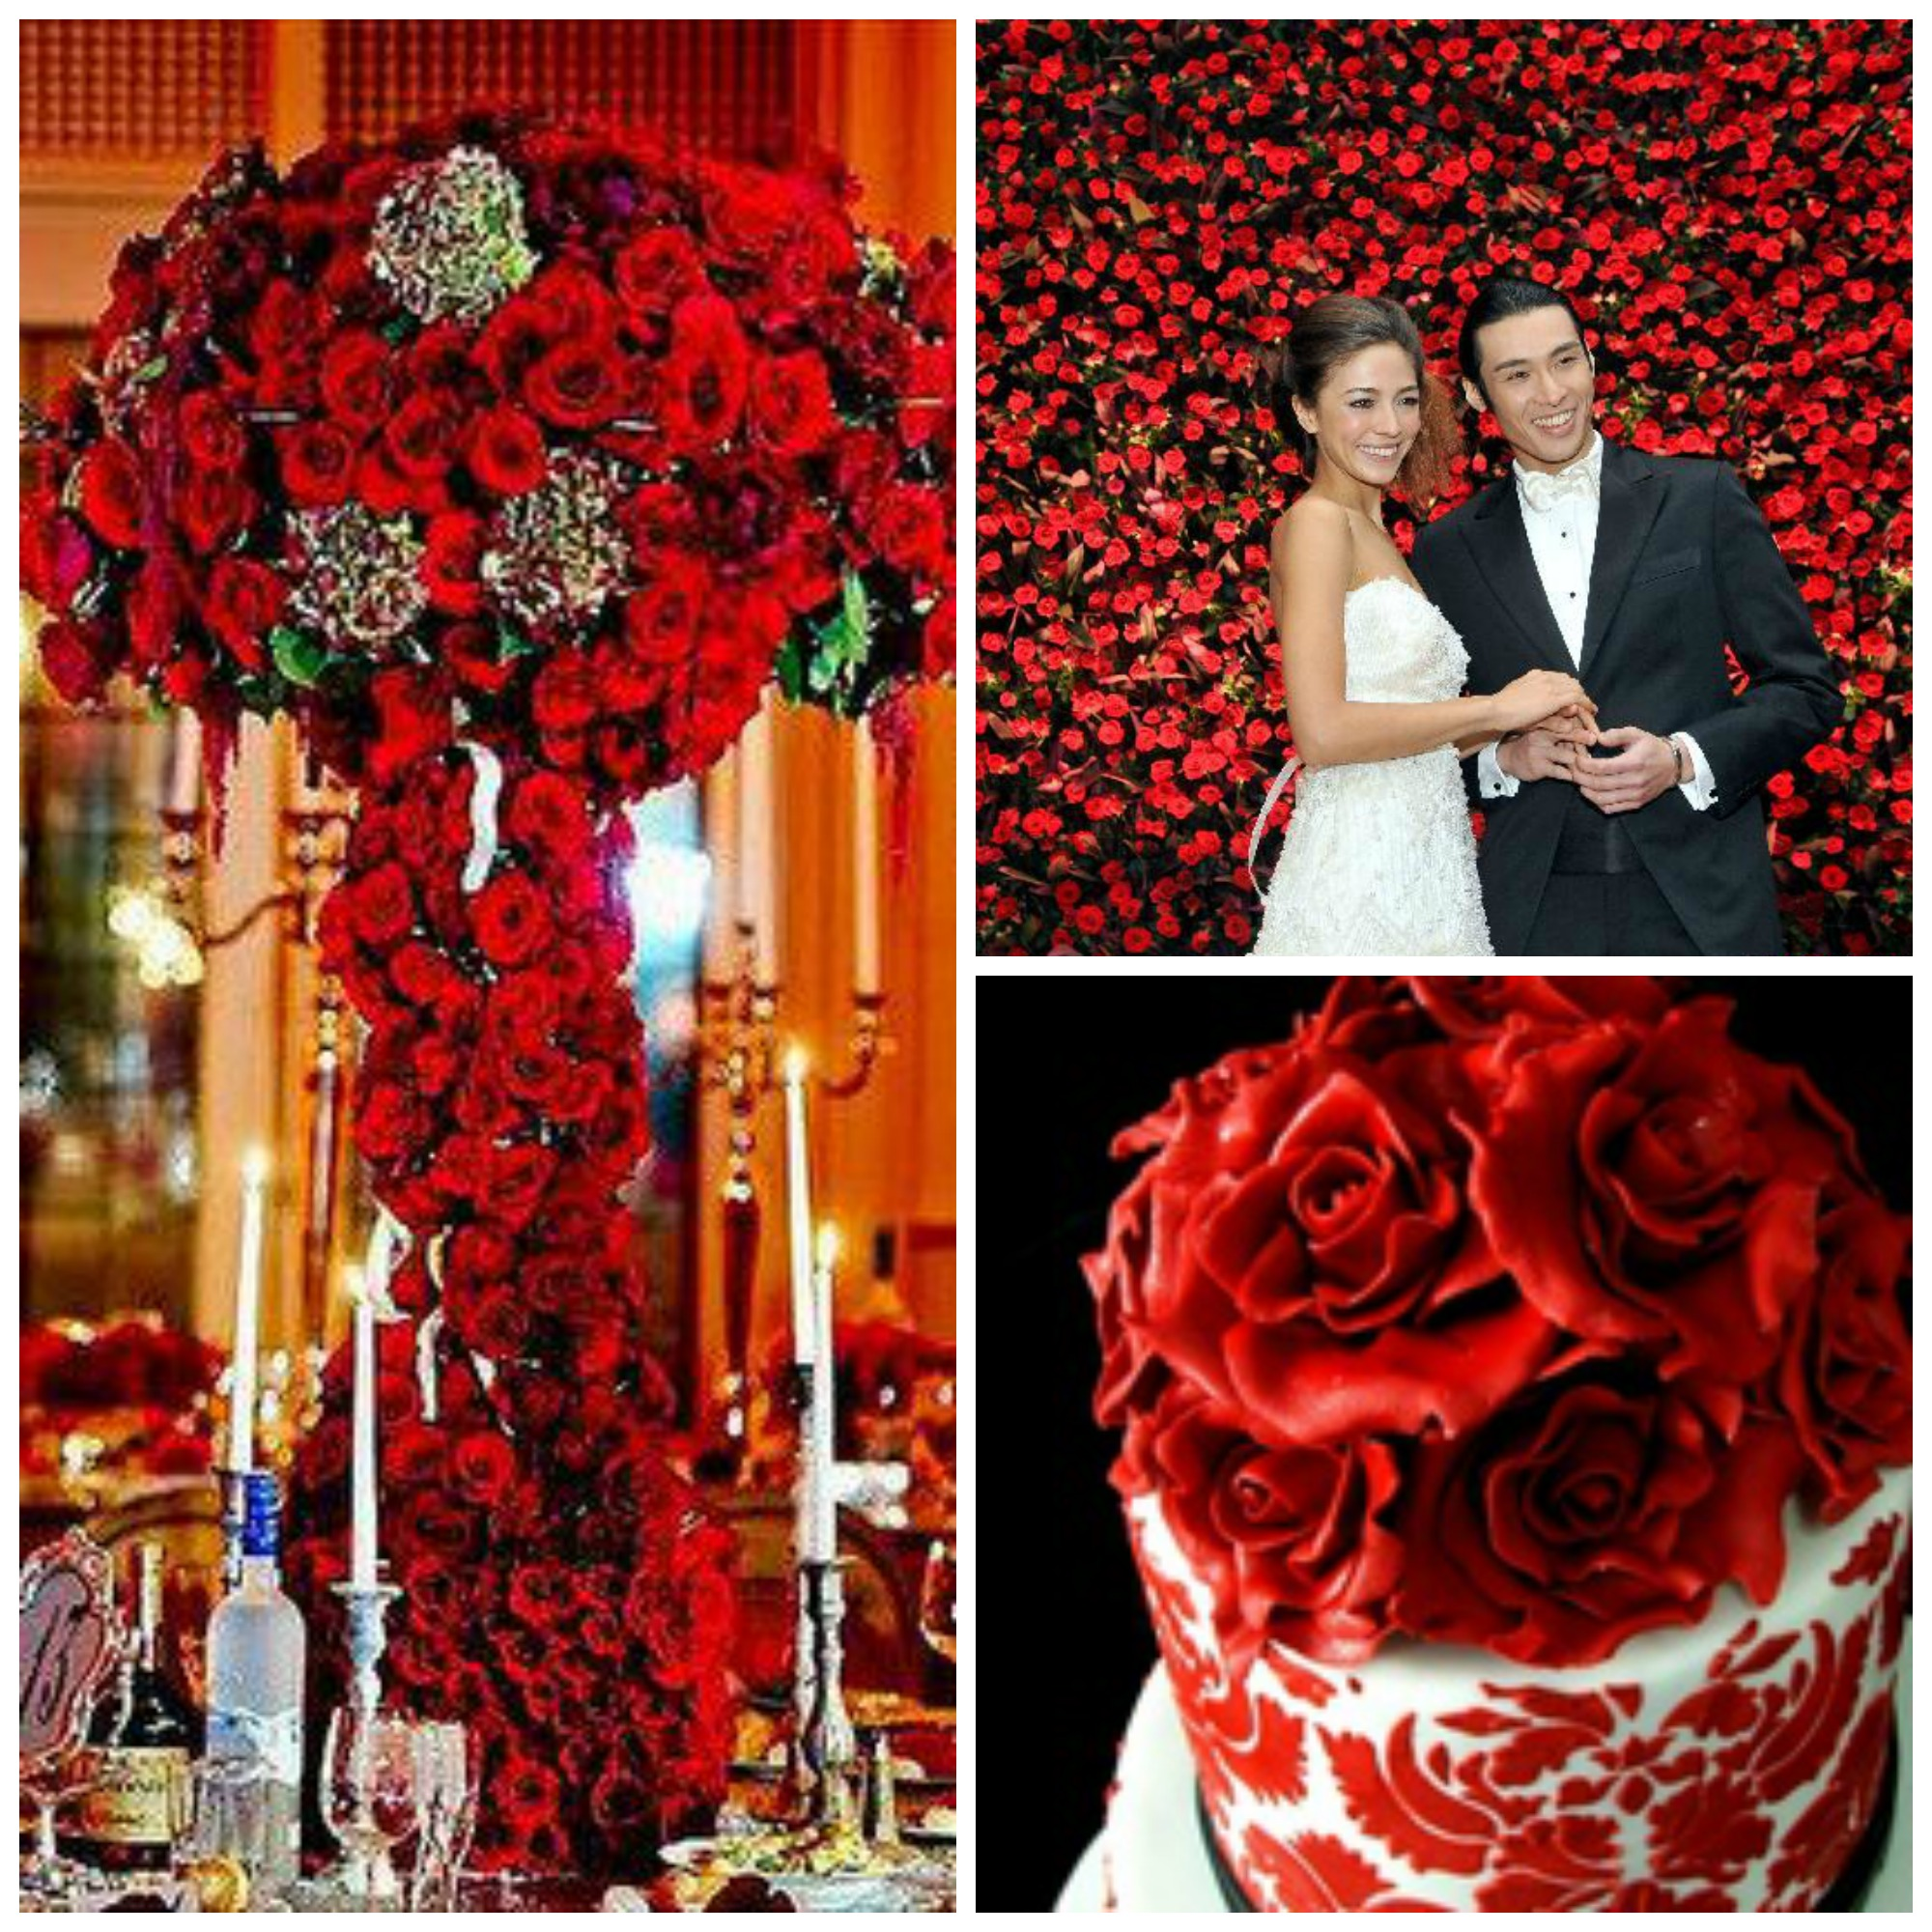 collage of red rose reception decor and cake